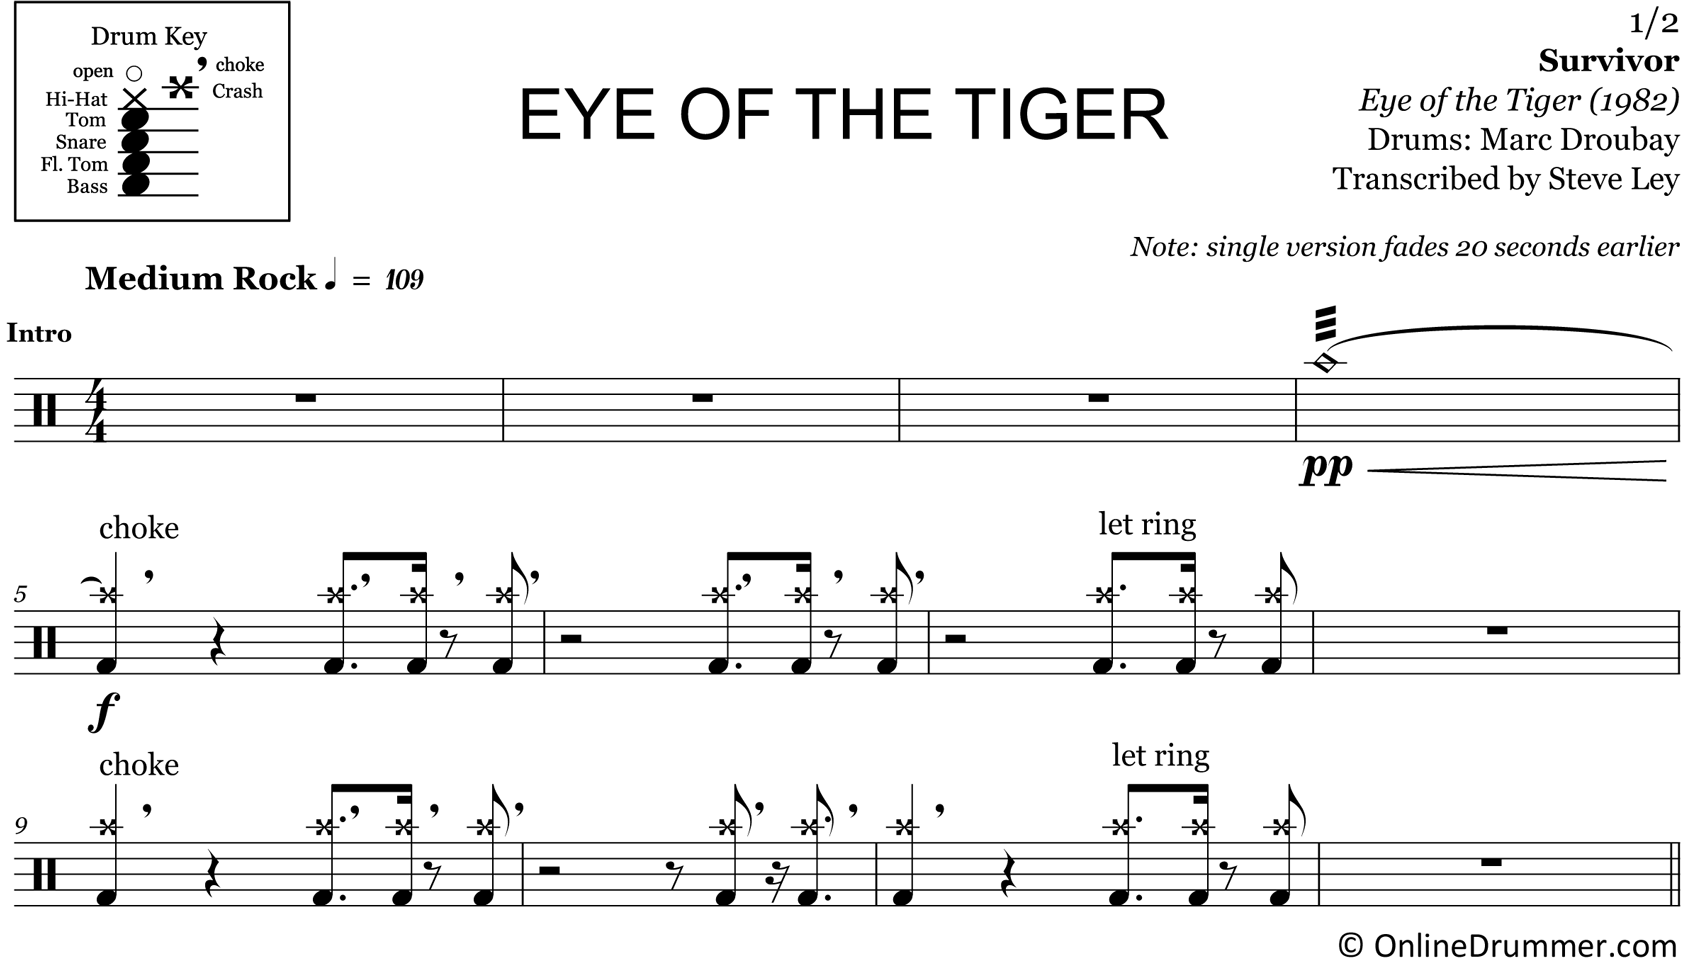 Eye of the Tiger - Survivor - Drum Sheet Music